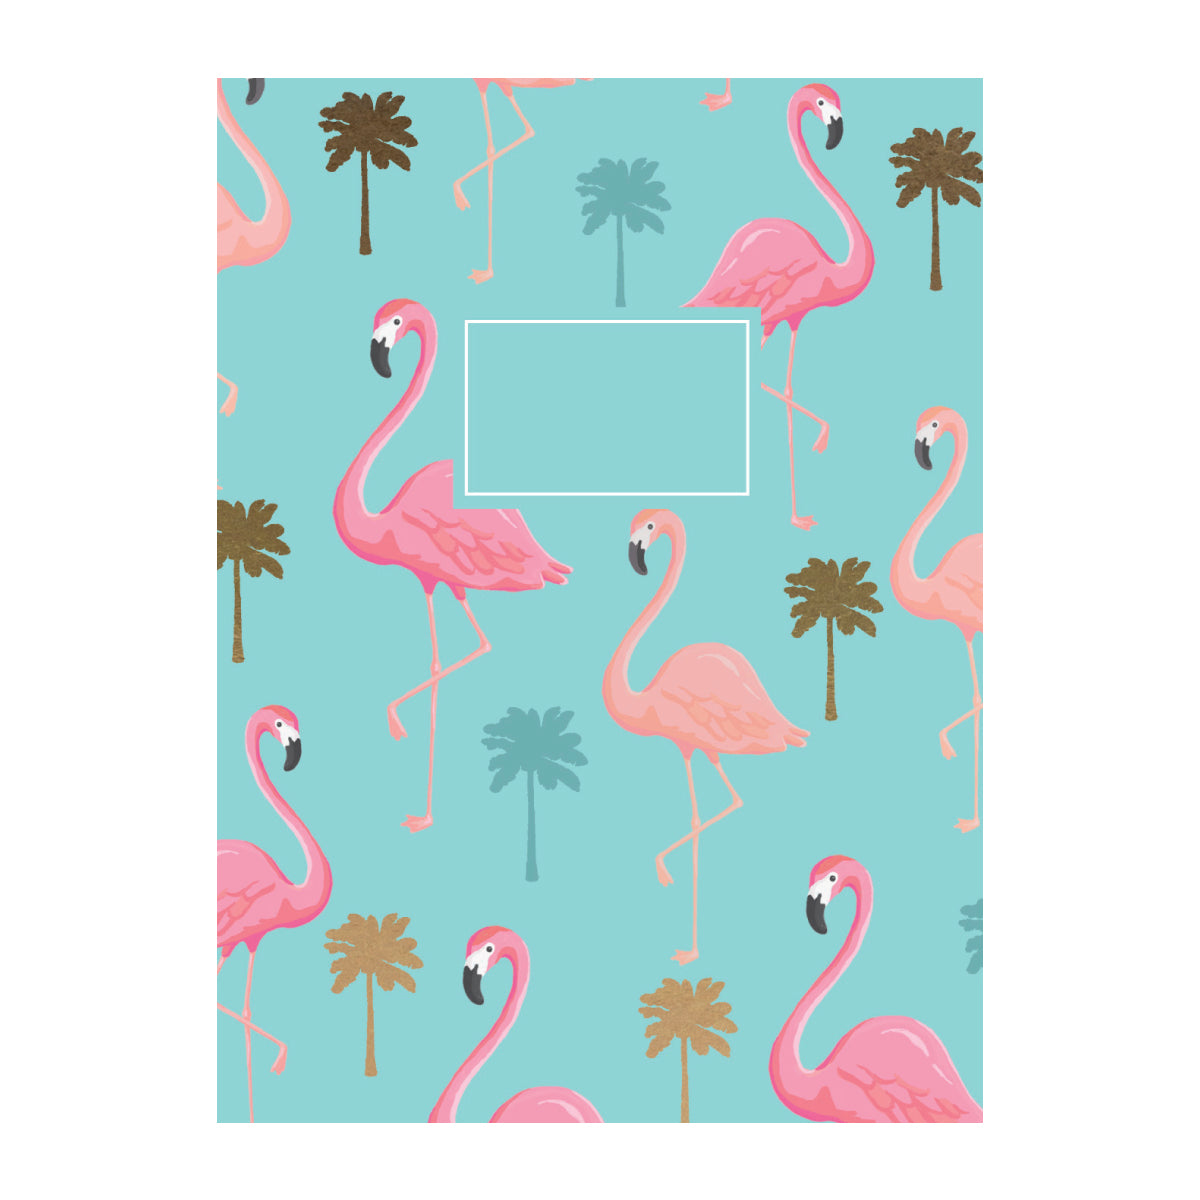 MIX & MATCH Exercise Book - Flamingo Palm